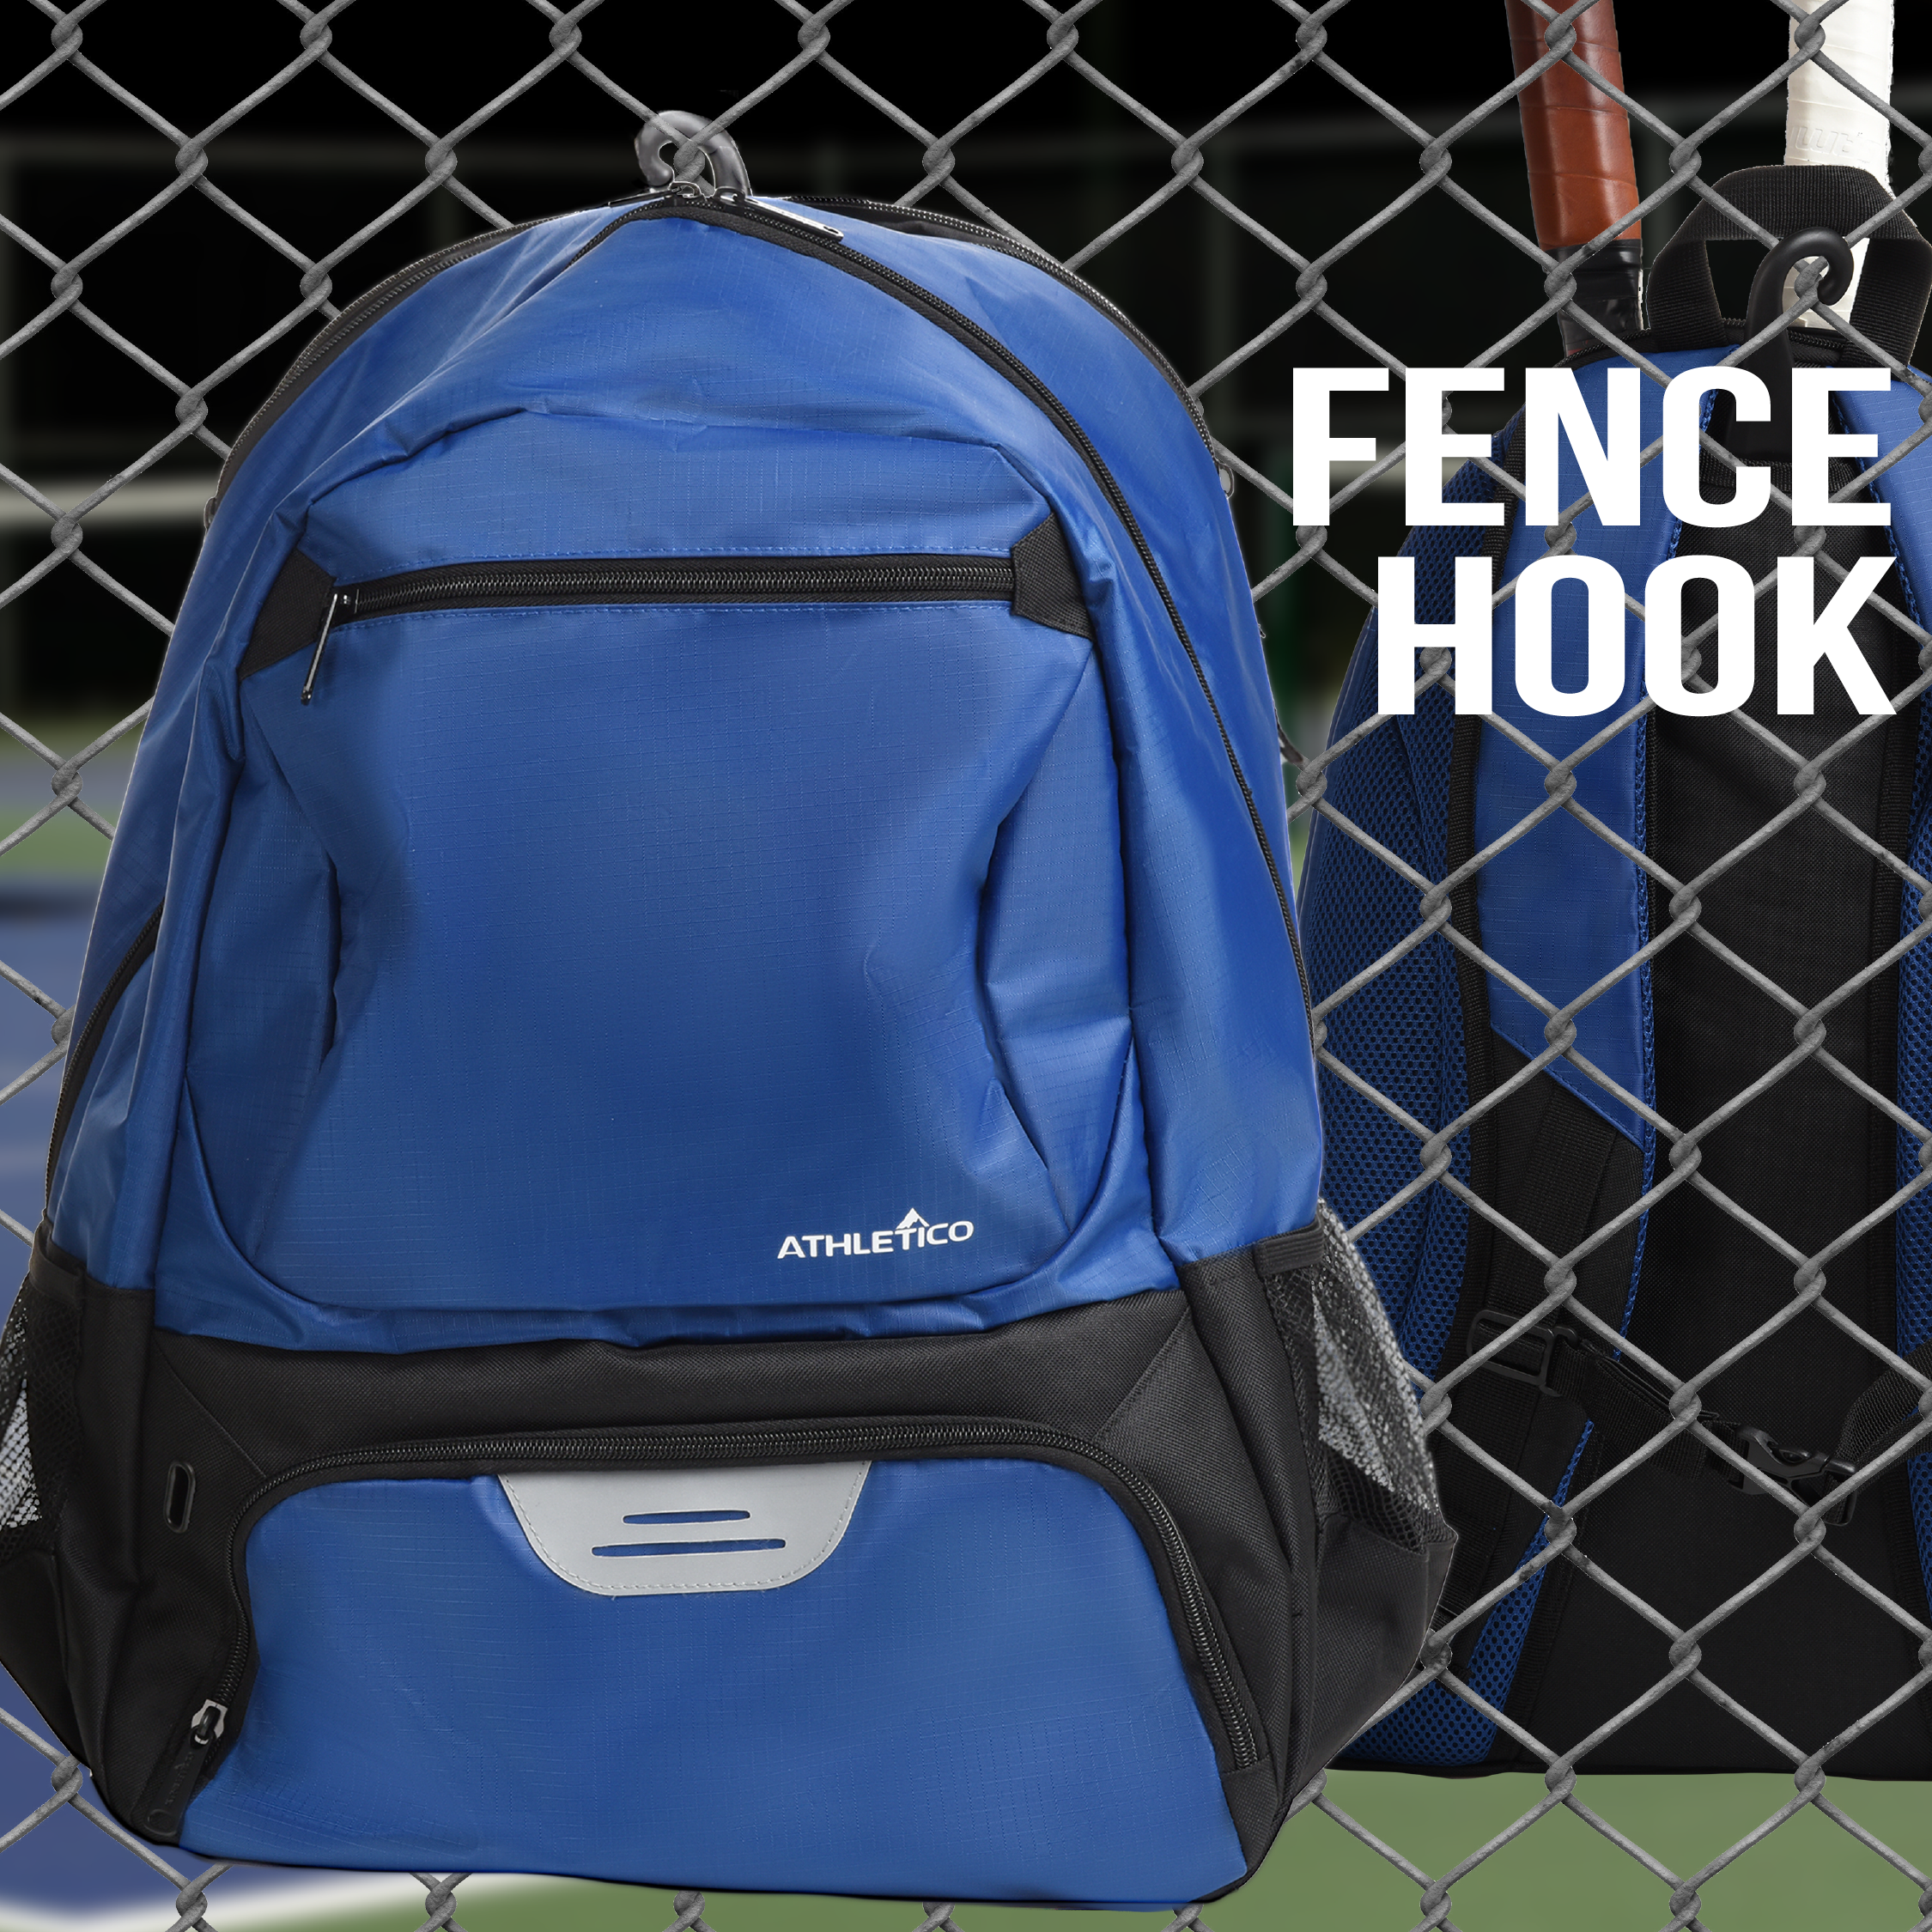 Premier Tennis Backpack Listing9@0.75x.png